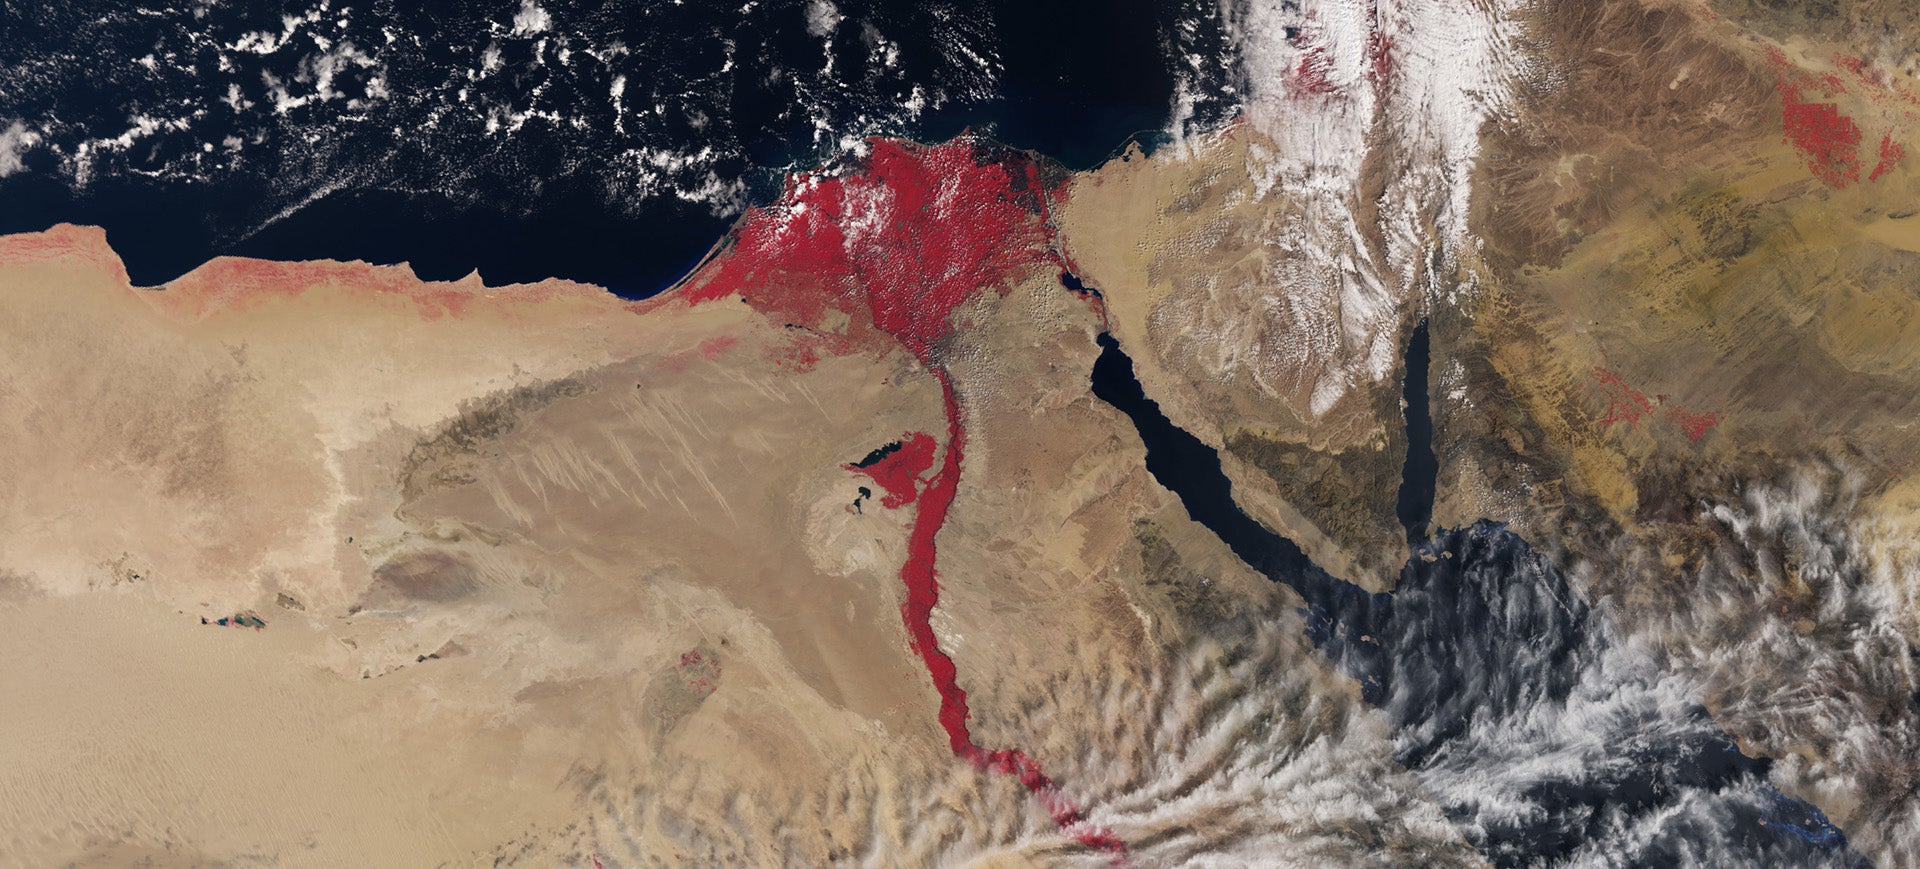 Don't Worry, the Nile Hasn't Turned to Blood in This Satellite Image